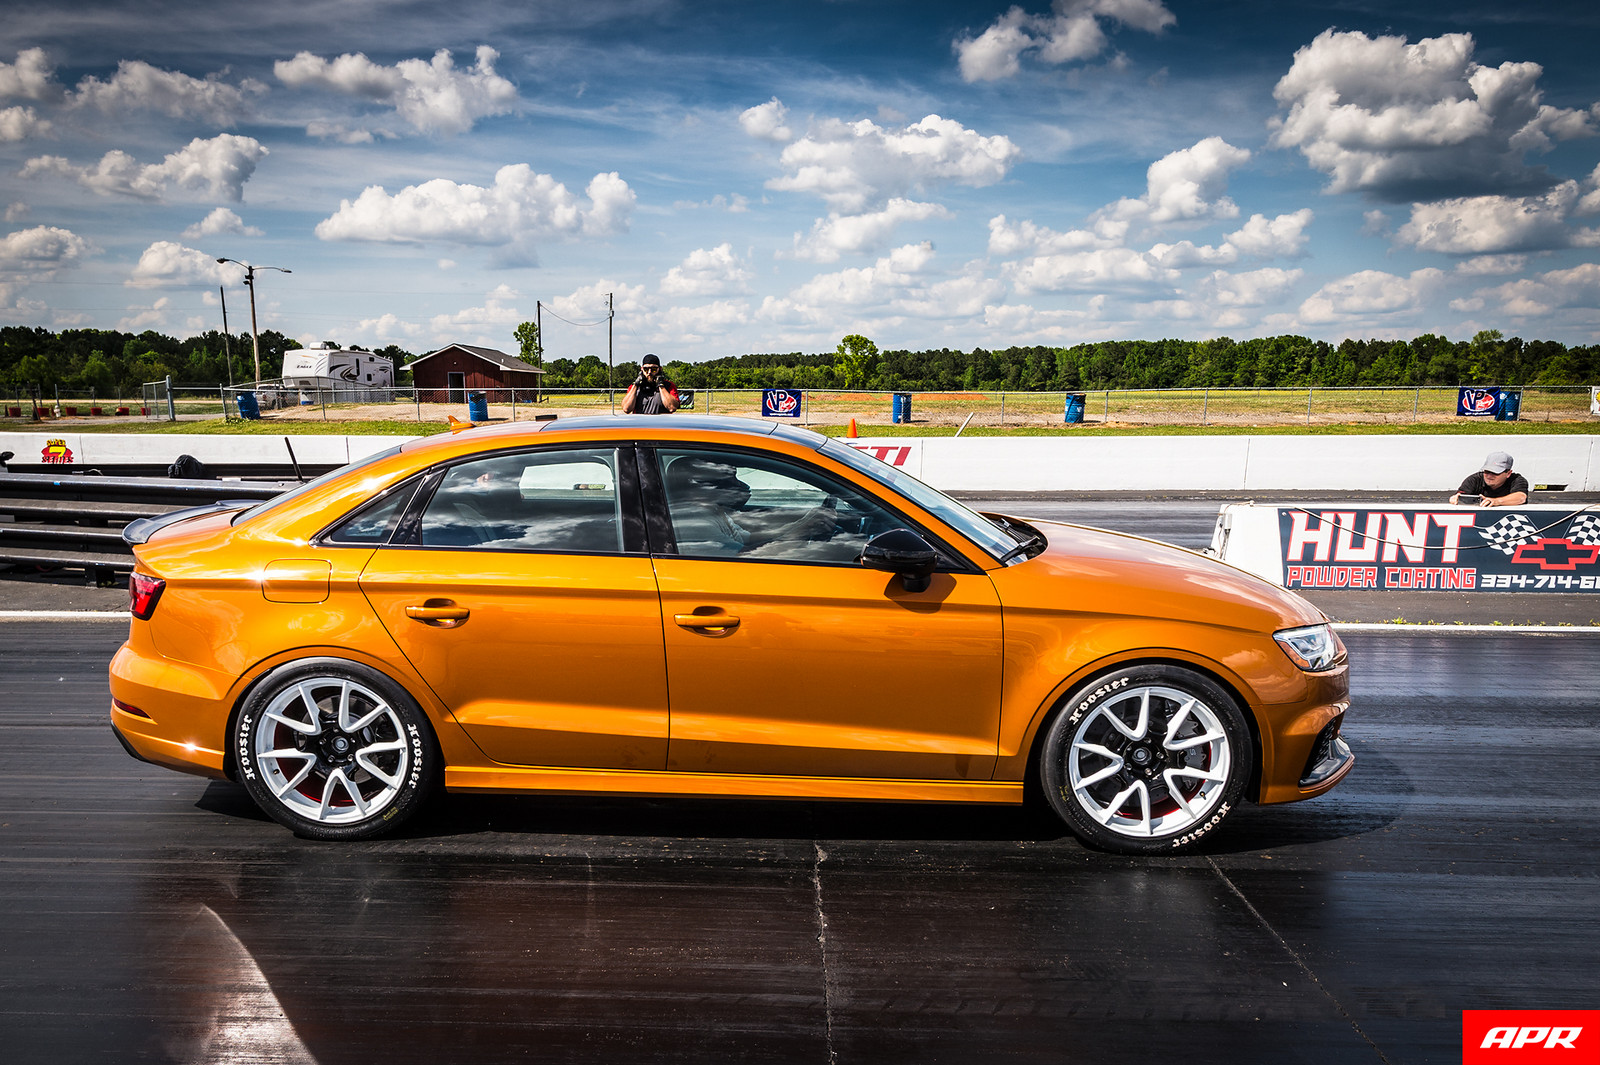 2018 Orange Audi RS-3 (8V) Sedan picture, mods, upgrades